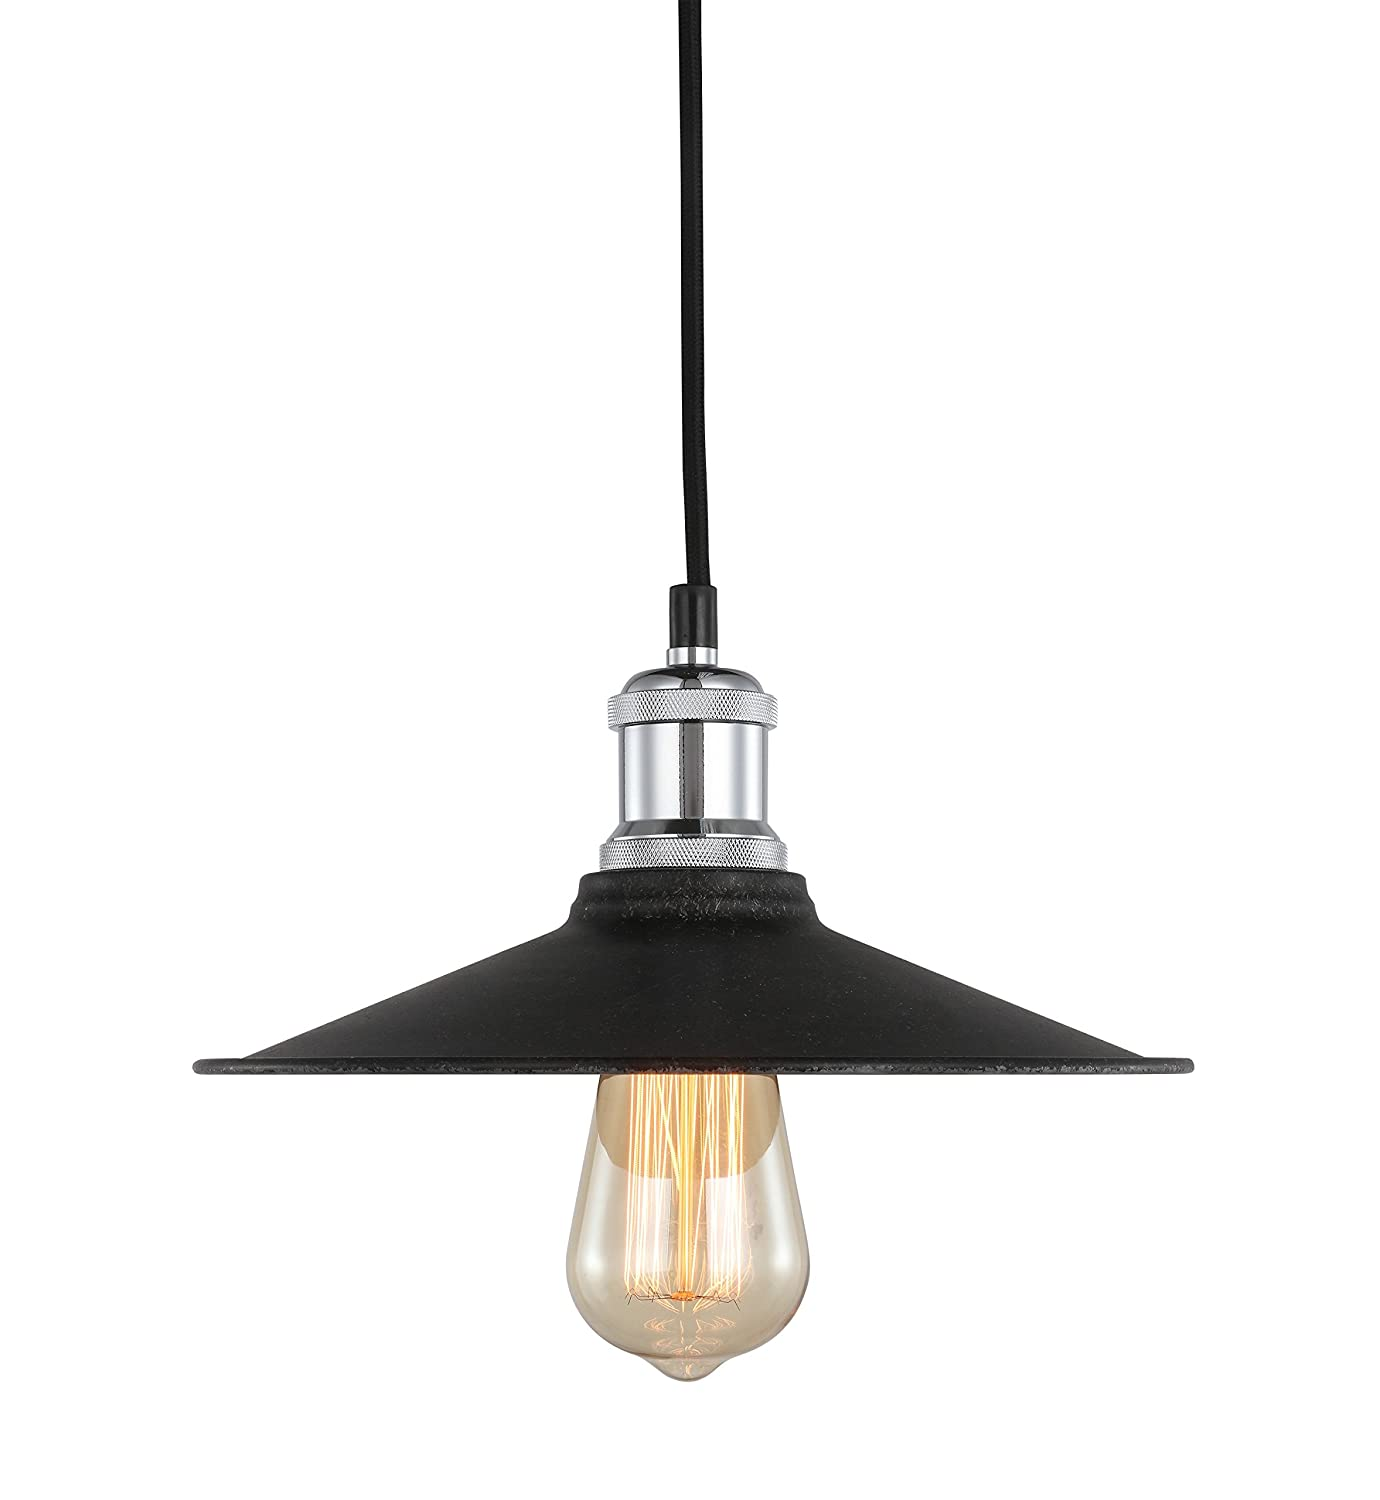 Amazon.com: Woodbridge 18323CHRWL-SM410CG Lighting - Lámpara ...